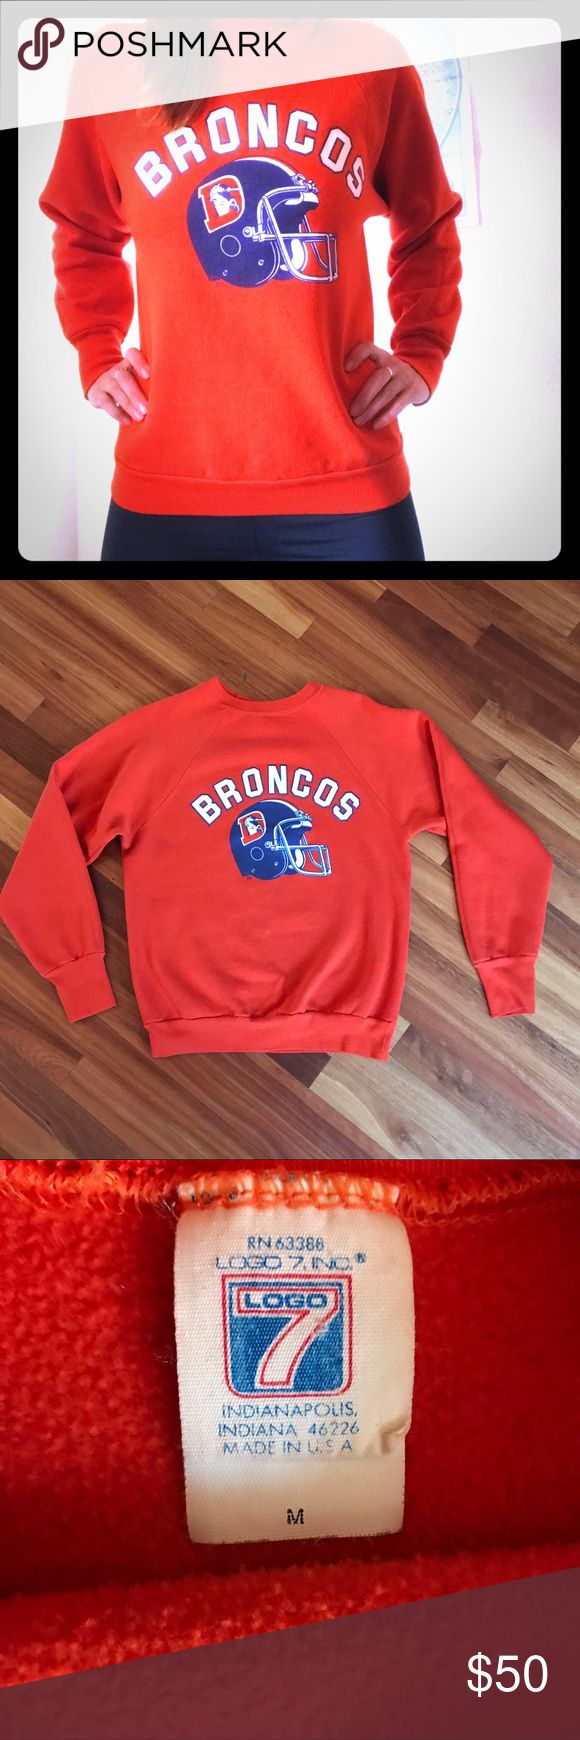 "Vintage 80s Denver Broncos Sweatshirt Rare vintage Denver Broncos NFL raglan style sweatshirt with retired classic helmet logo. Super soft 50/50 cotton/polyester blend. Tag reads size M, but fits more like a modern day small.   USA made by Logo7 In excellent vintage condition, no tears or stains.   Measurements: arm pit to arm pit: 19"" collar to sleeve: 28.5"" shoulder to waist: 24""  * model is 5'7"" 115lbs & wears size small Tops Sweatshirts & Hoodies"